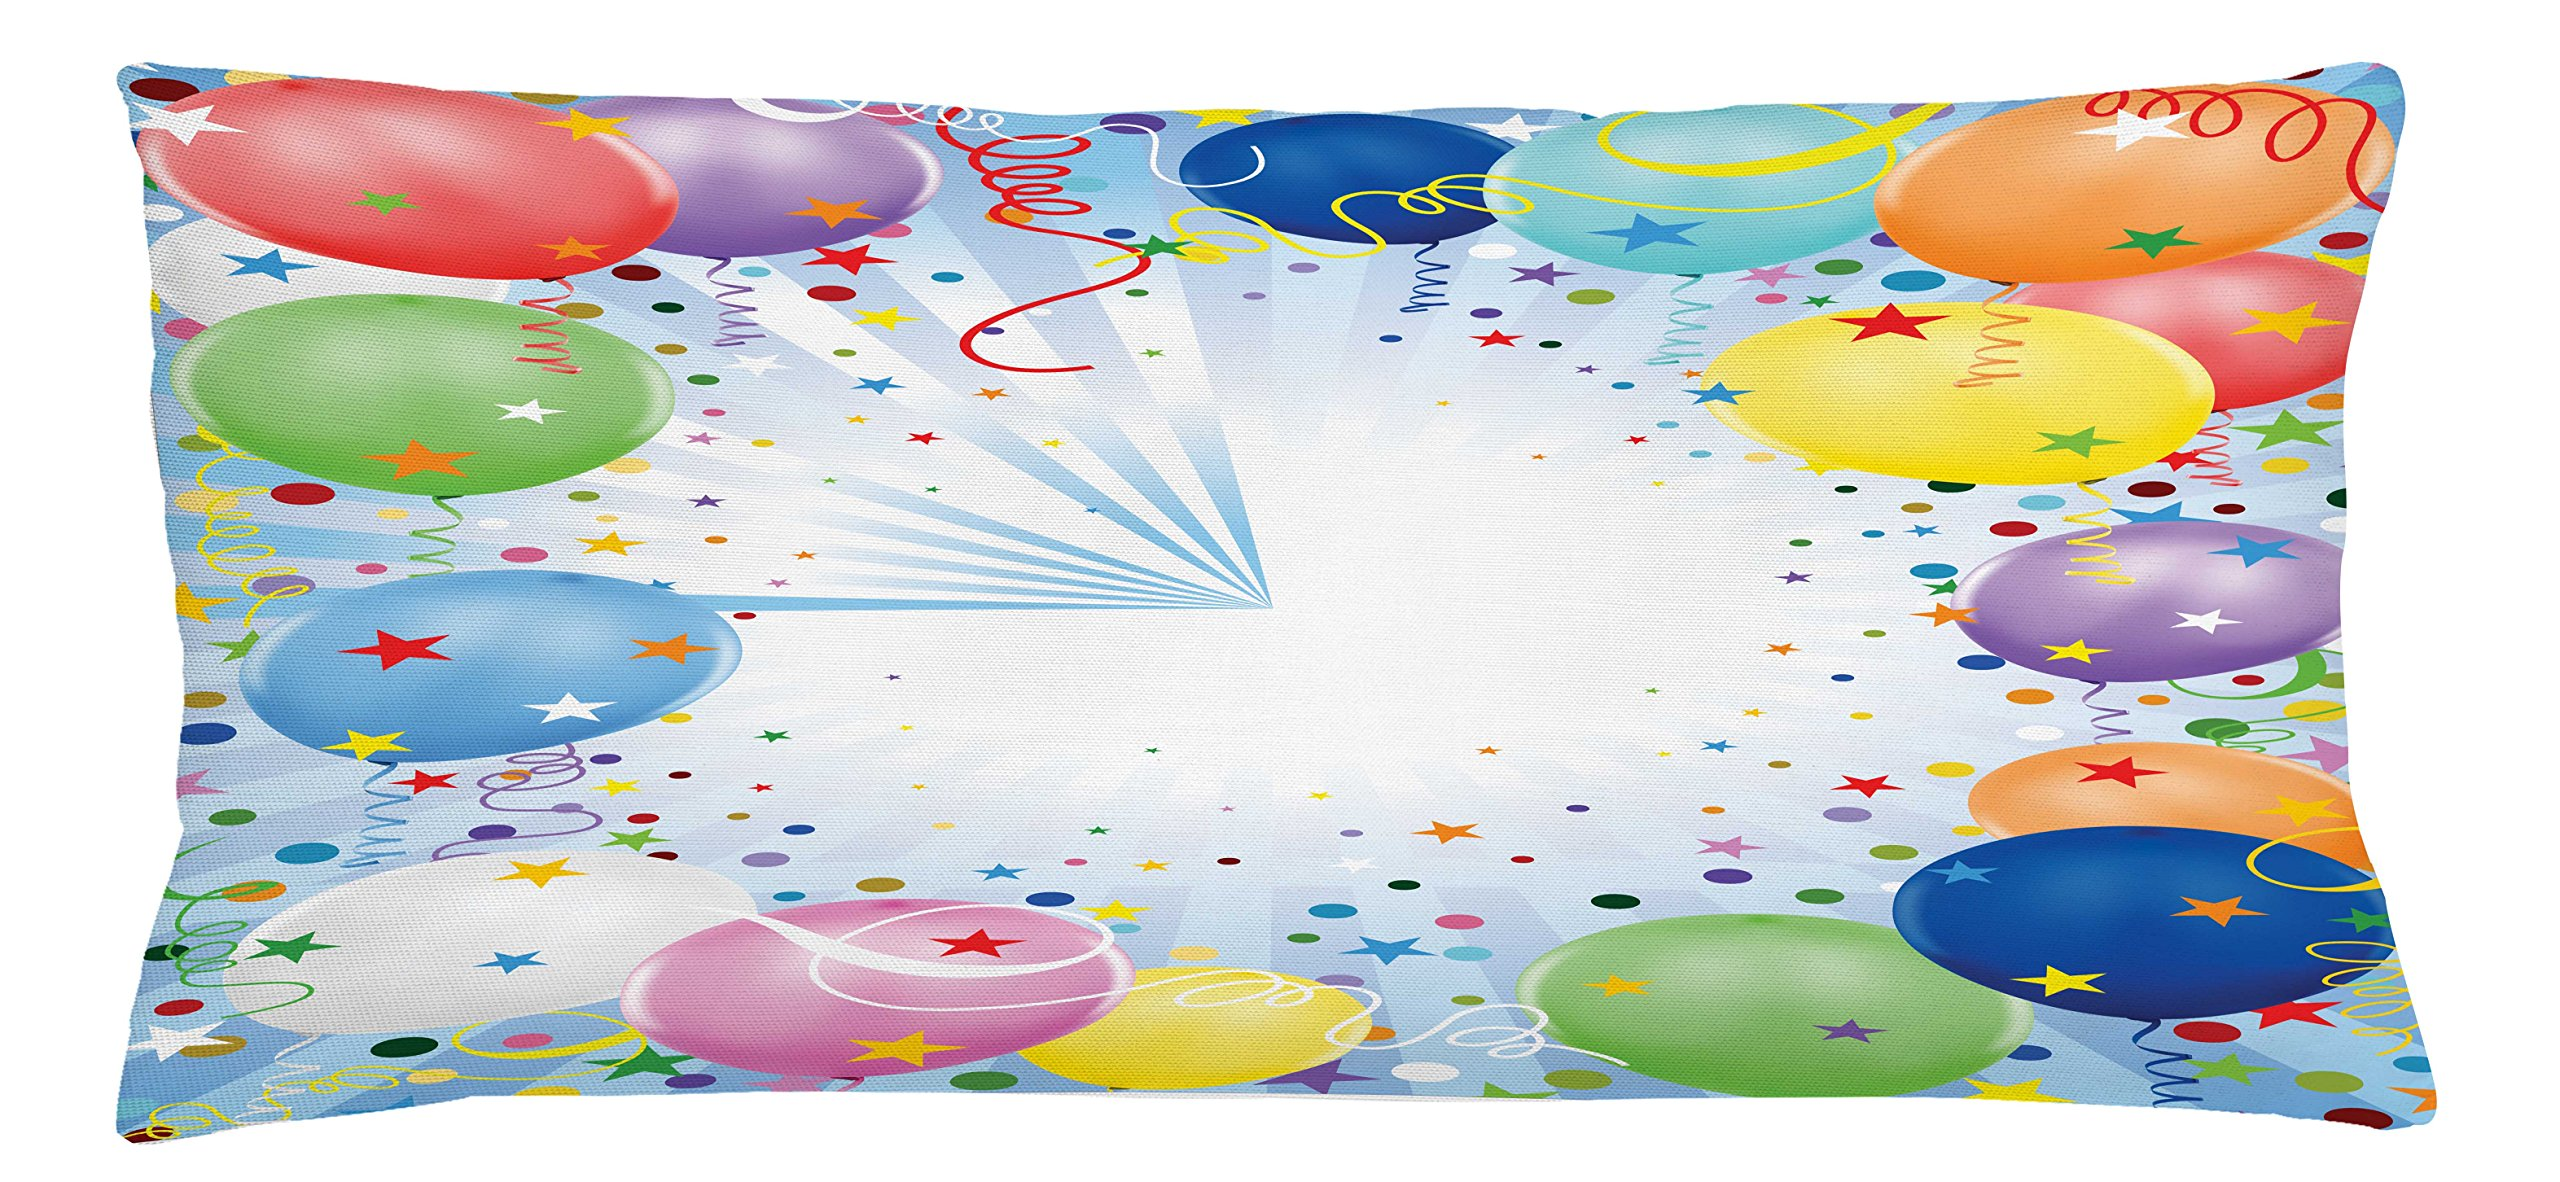 Ambesonne Kids Party Throw Pillow Cushion Cover, Happy Celebration Event Theme with Colorful Flying Balloons Confetti and Stars, Decorative Square Accent Pillow Case, 36 X 16 inches, Multicolor